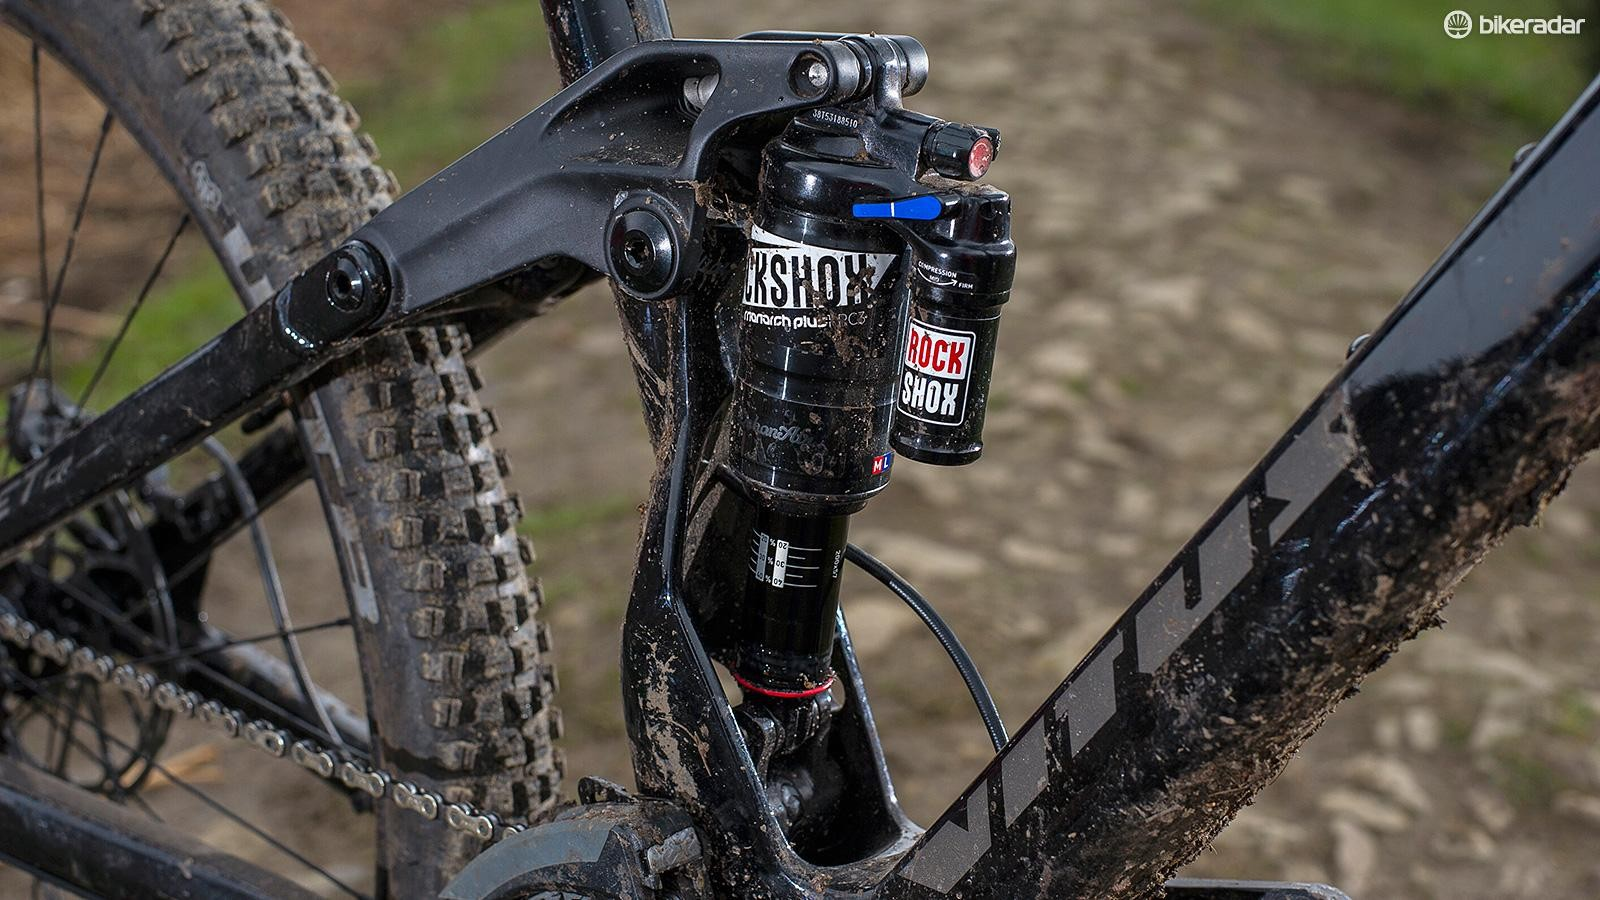 The split seat tube allows a 'floating' shock mounting for consistently excellent, setup tolerant suspension control